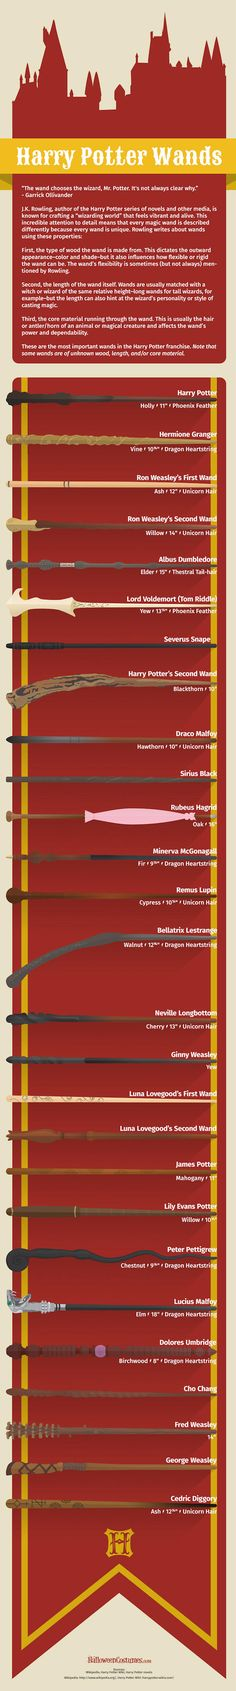 Created by online costume retailer Halloweencostumes.com, it depicts all of the wands featured throughout the Harry Potter series, describing their lengths and materials. Mental Floss